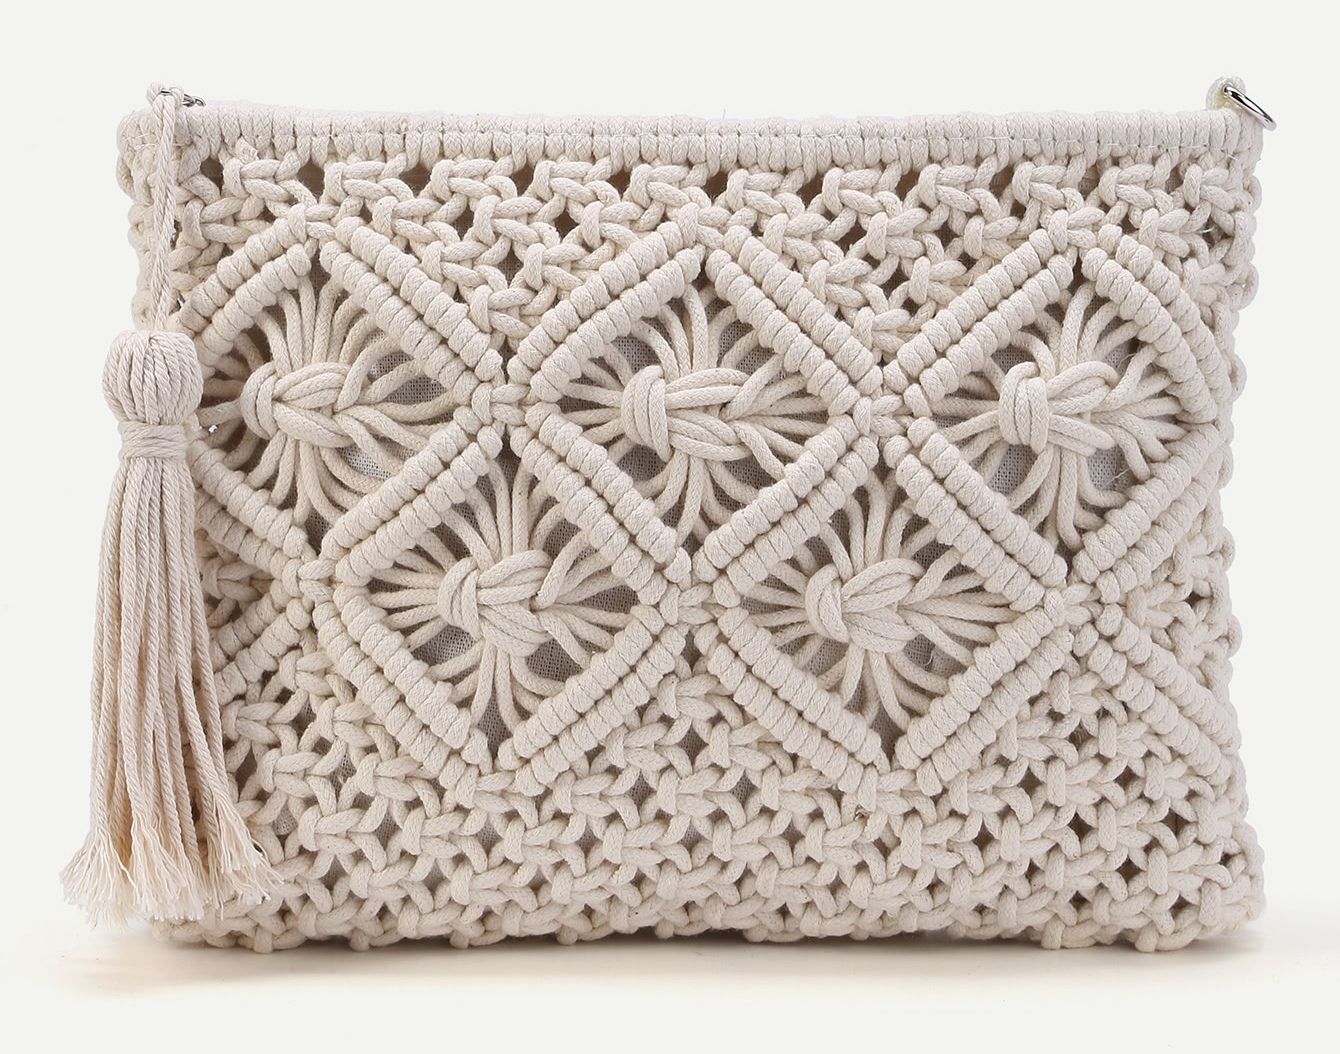 Crochet Clutch Bag With Tassel Knitting Crochet Dy